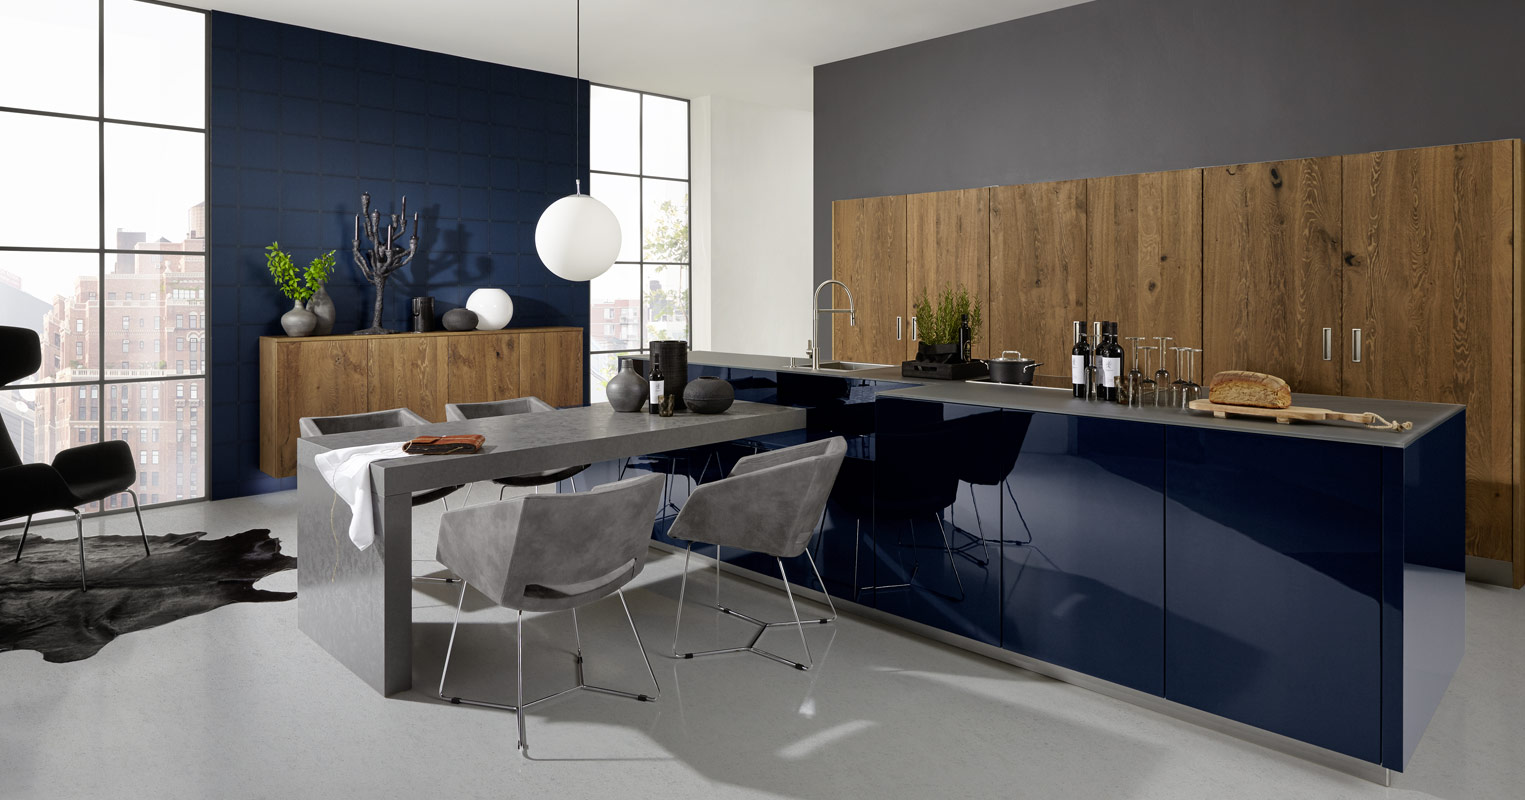 J2 Design Concepts recognise that we probably spend more time in our kitchen than anywhere else in the home